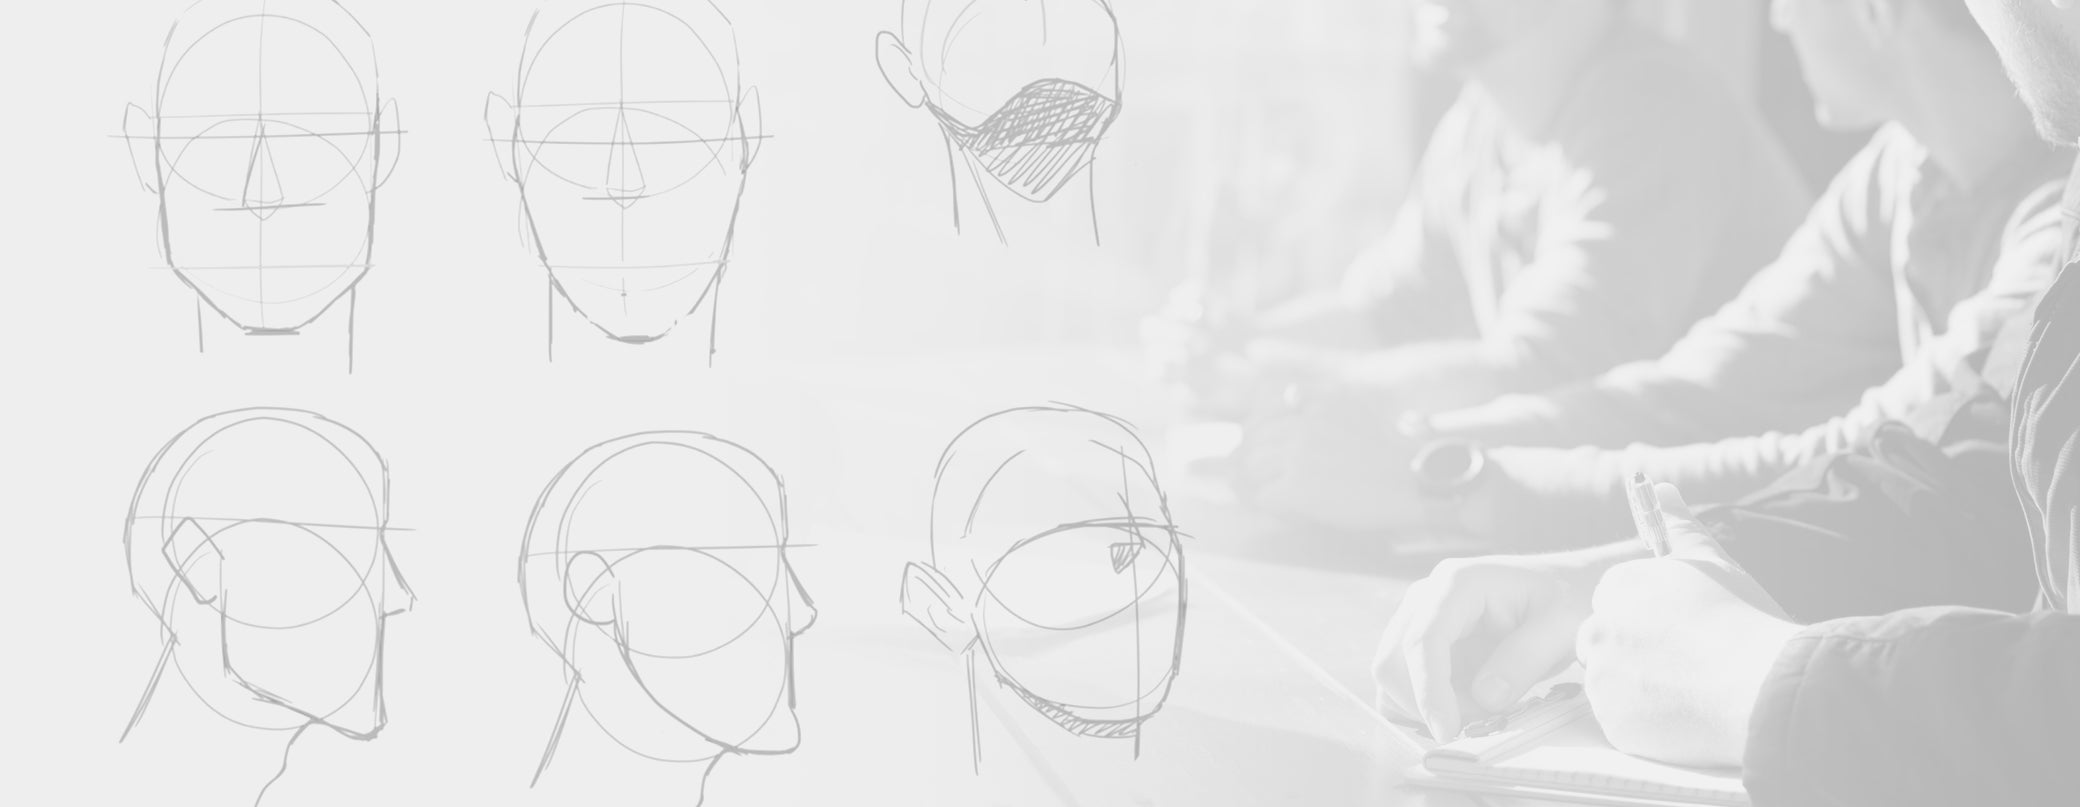 jaw drawings